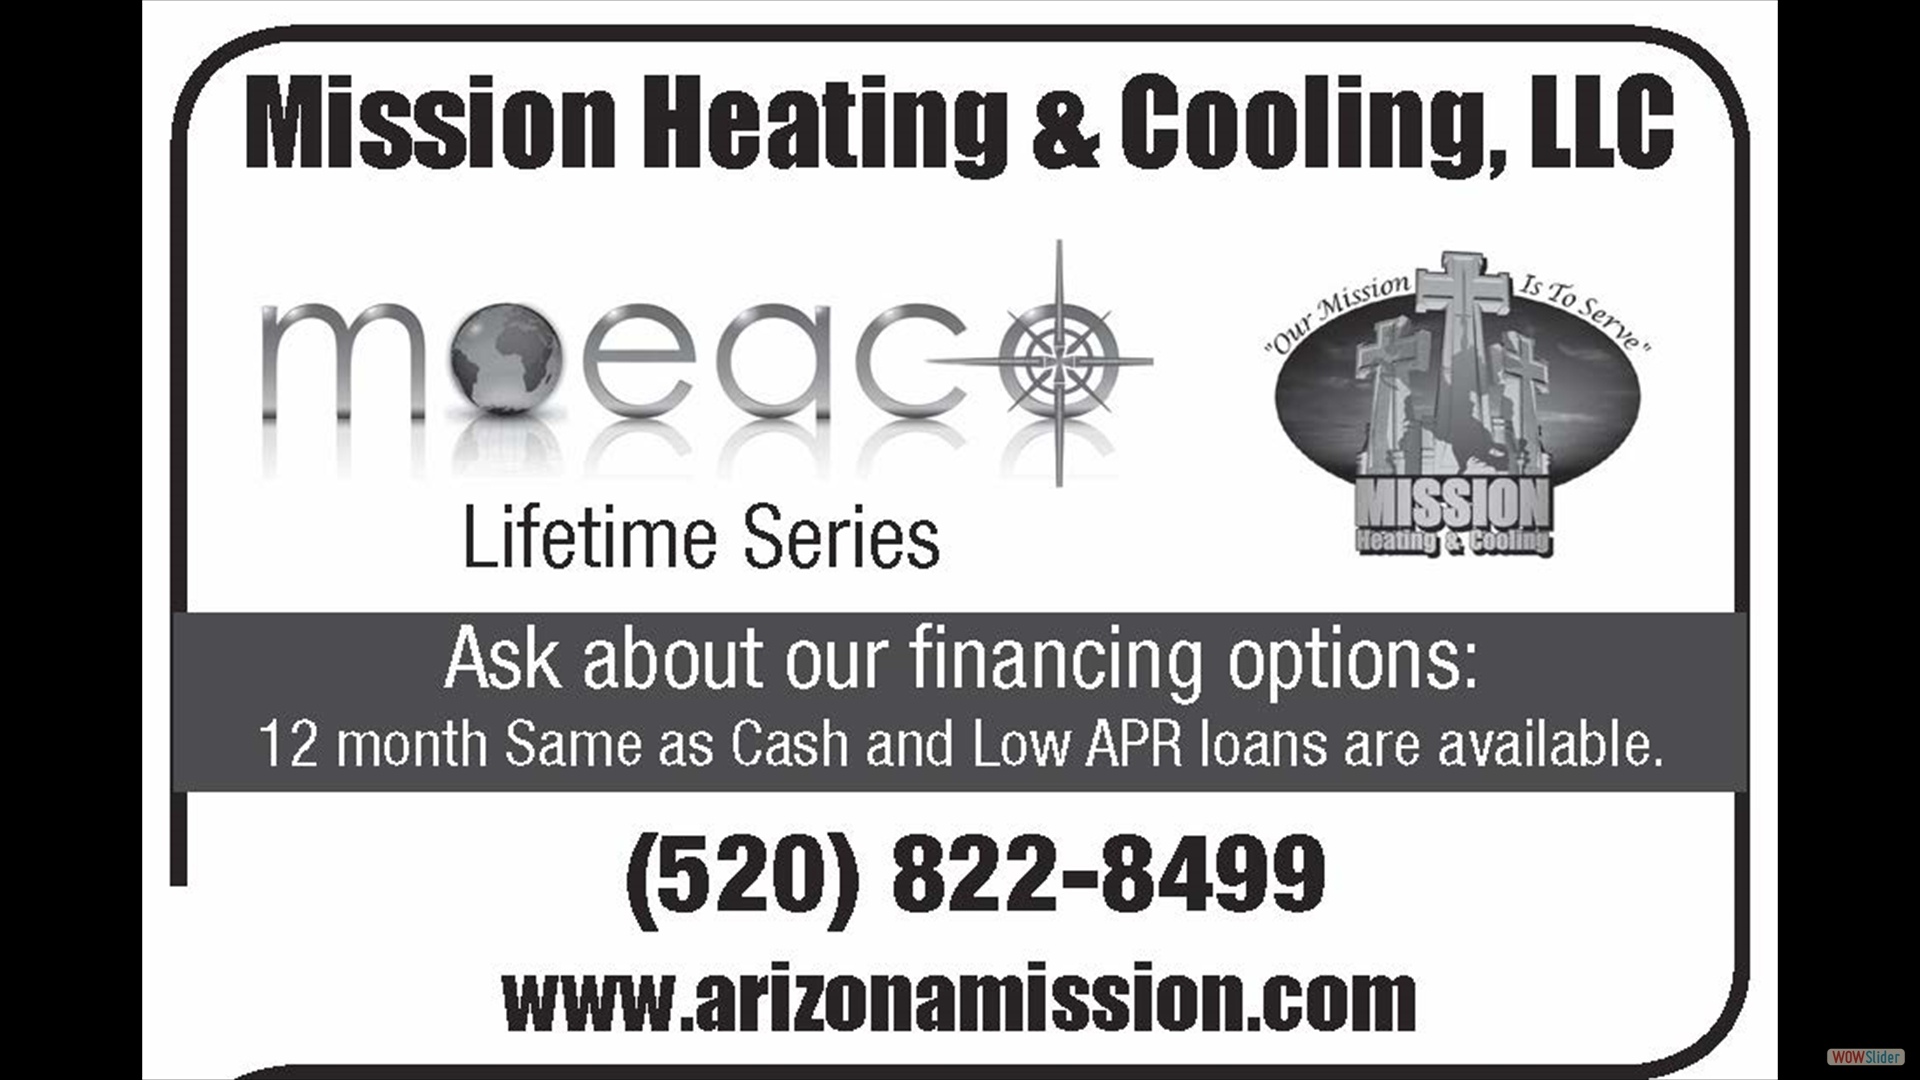 Mission Heating & Cooling Ad Copy